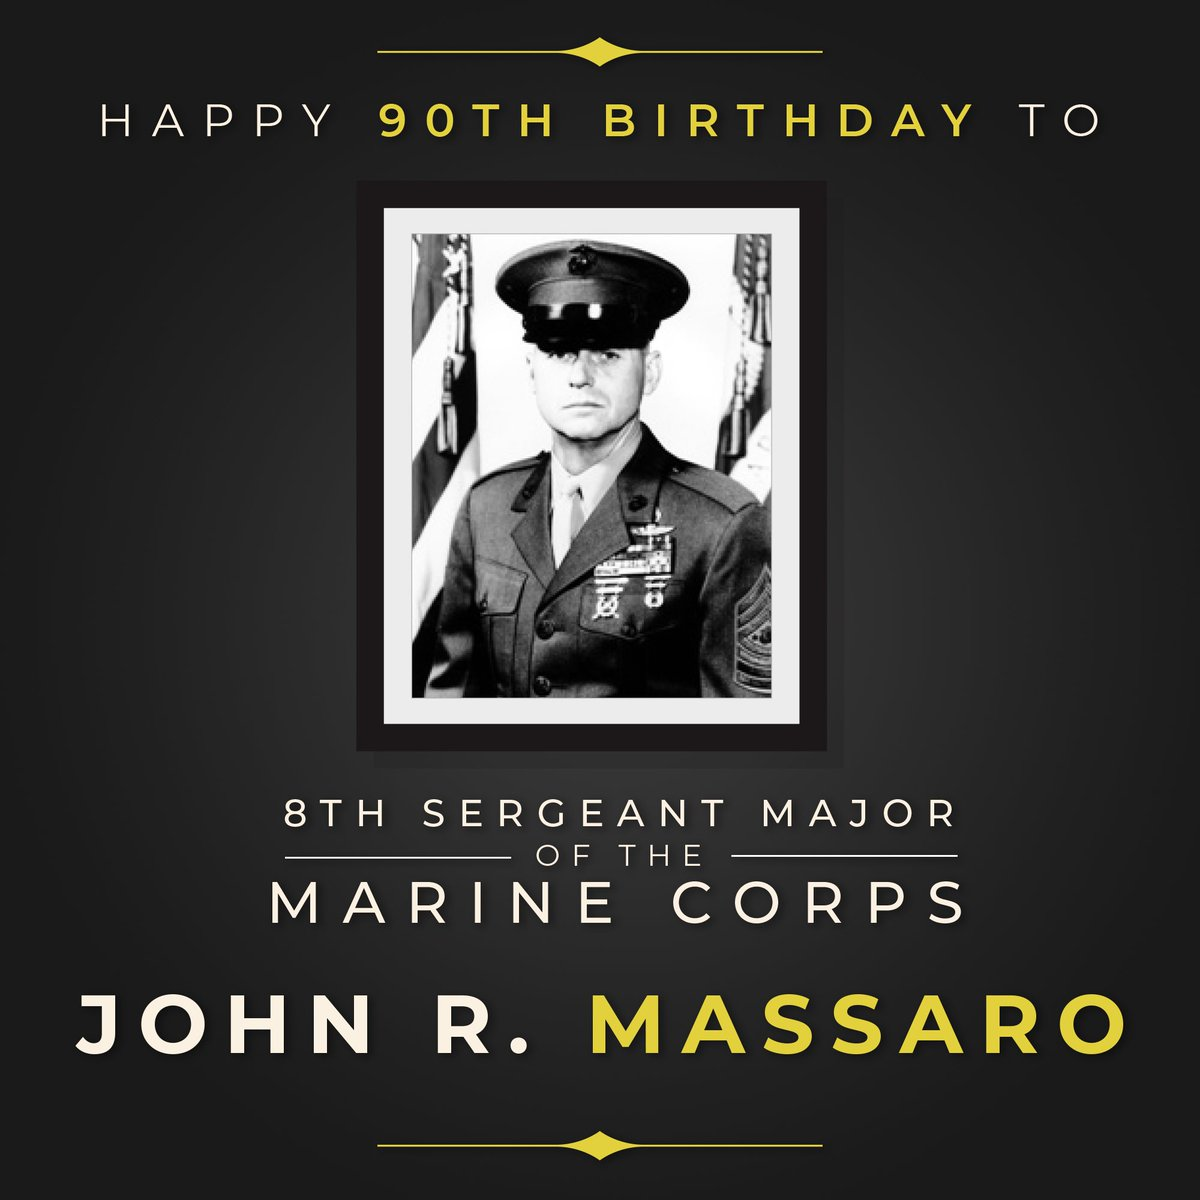 Celebrate with us today the 90th birthday of the 8th Sgt. Maj. of the Marine Corps. #HappyBirthday Sgt Maj. John R. Massaro.